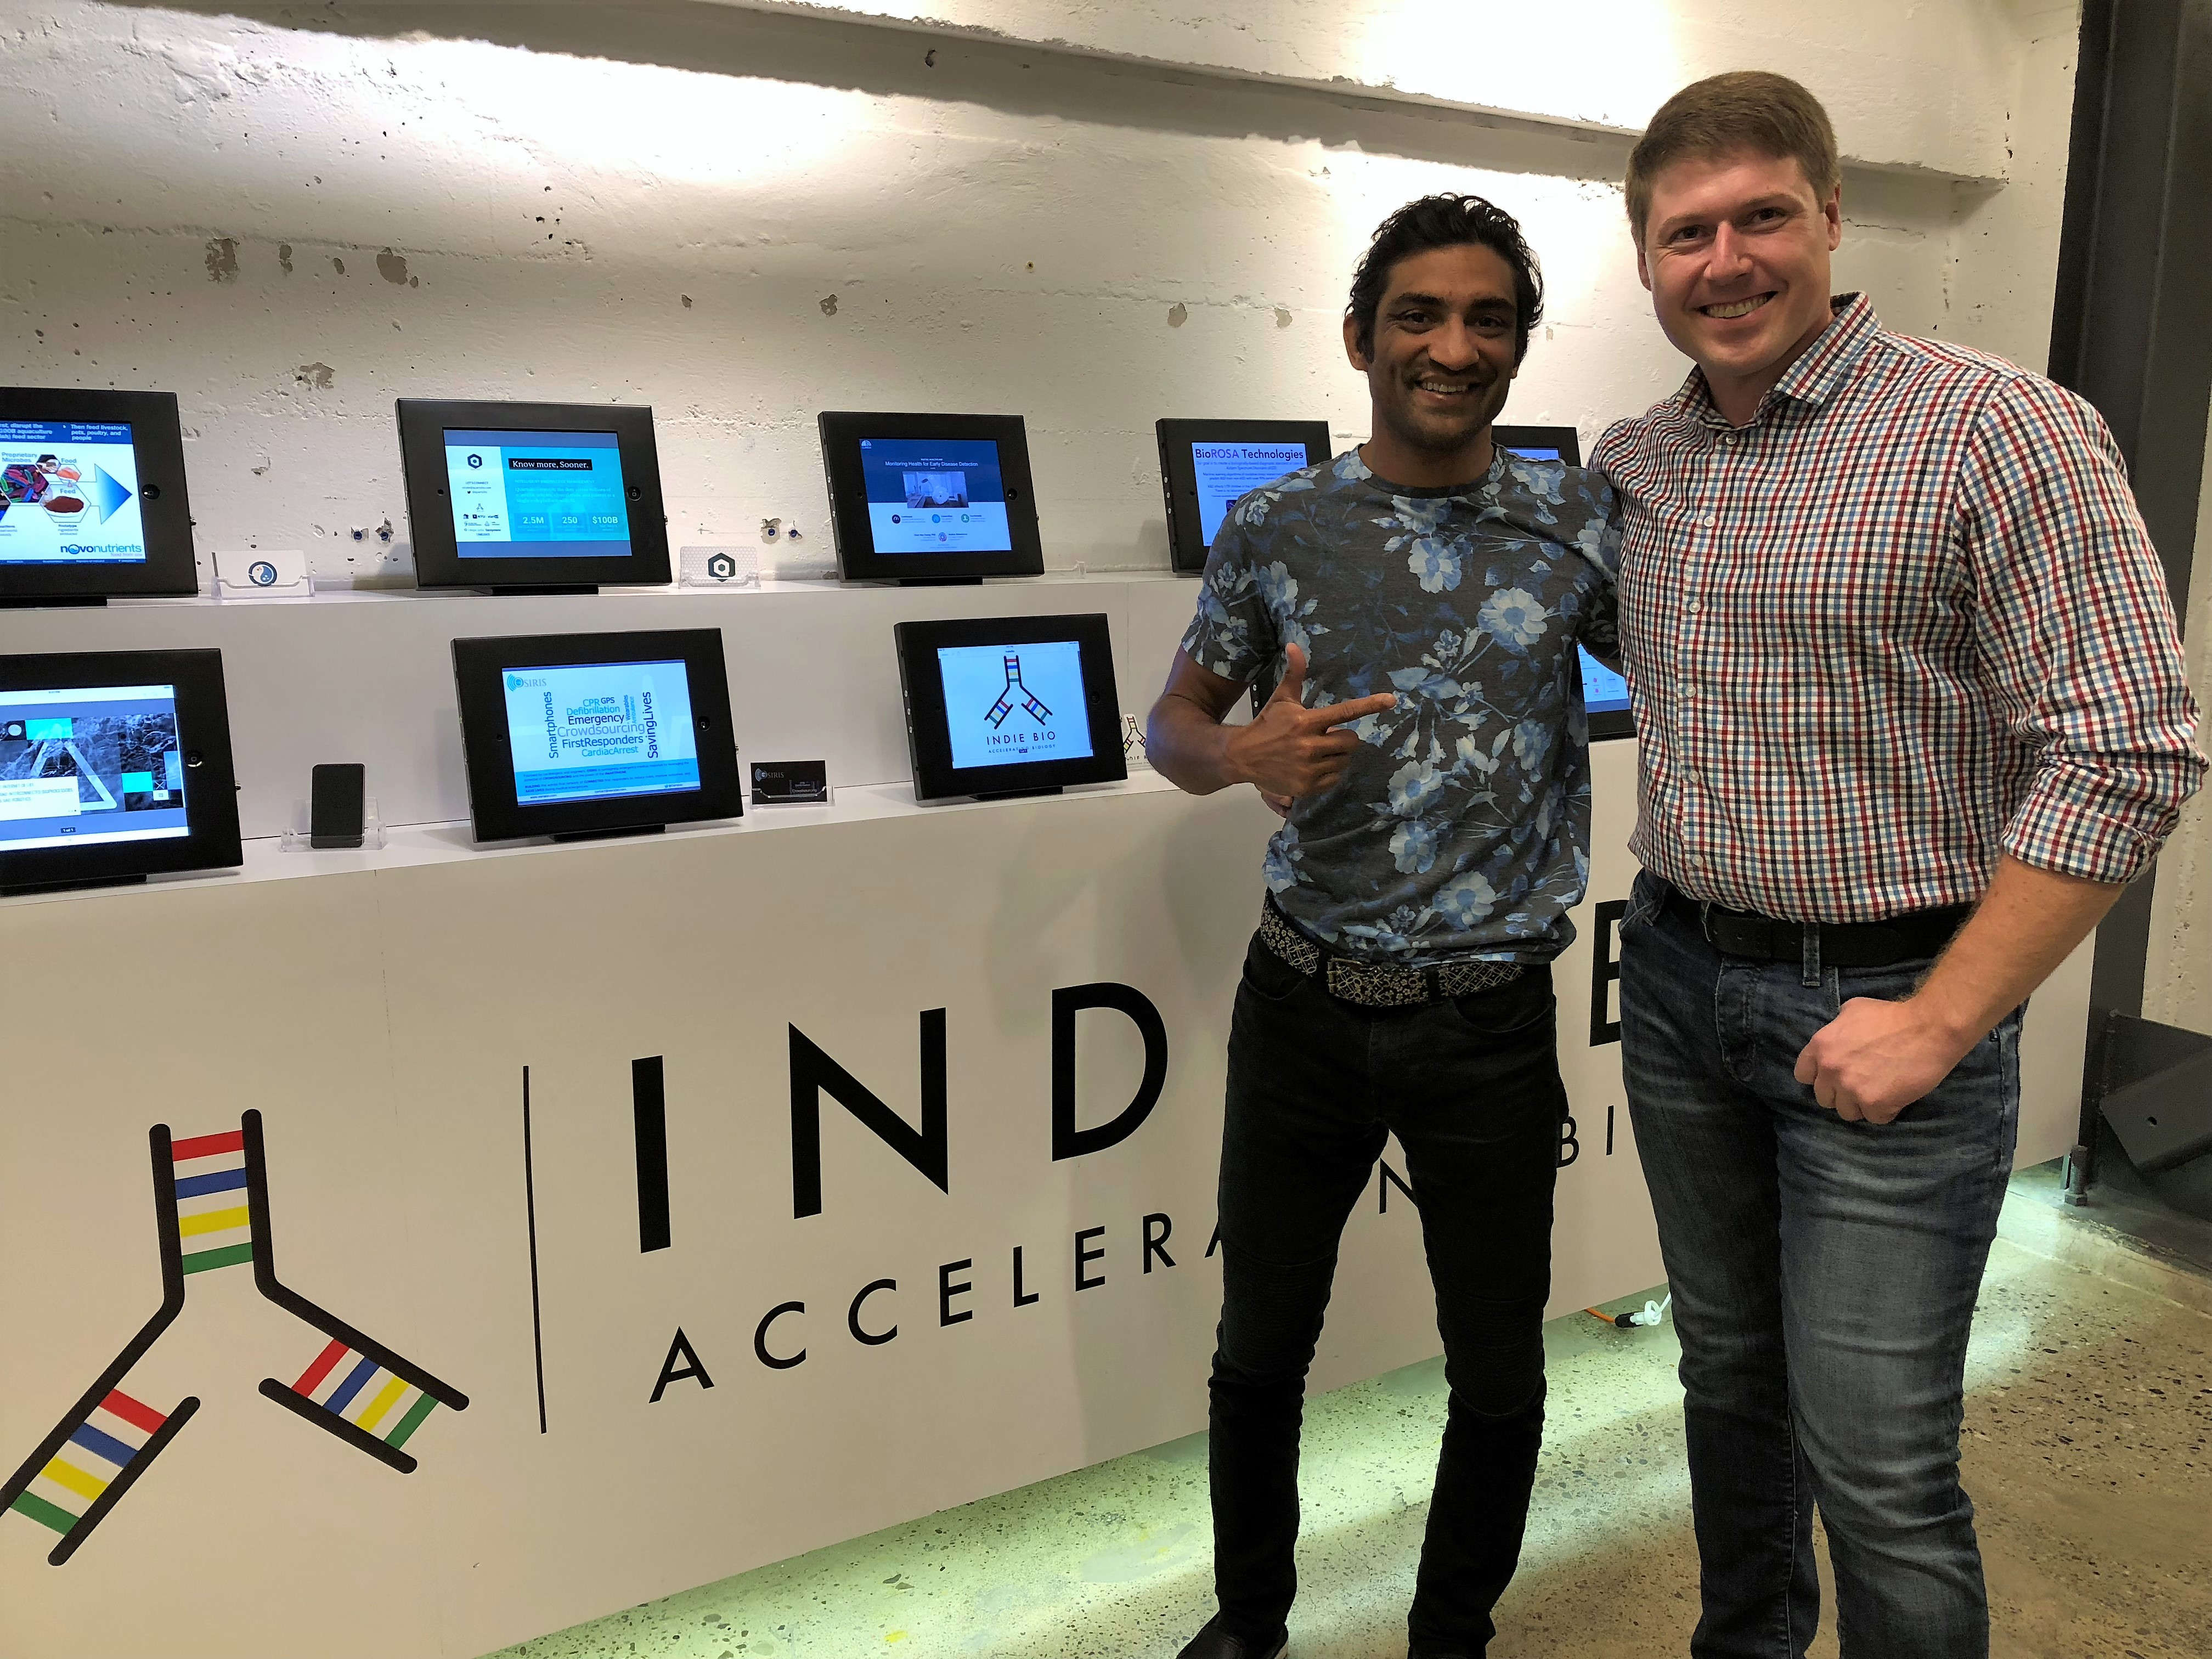 For the first time the Russian team was included in the largest scientific accelerator IndieBio